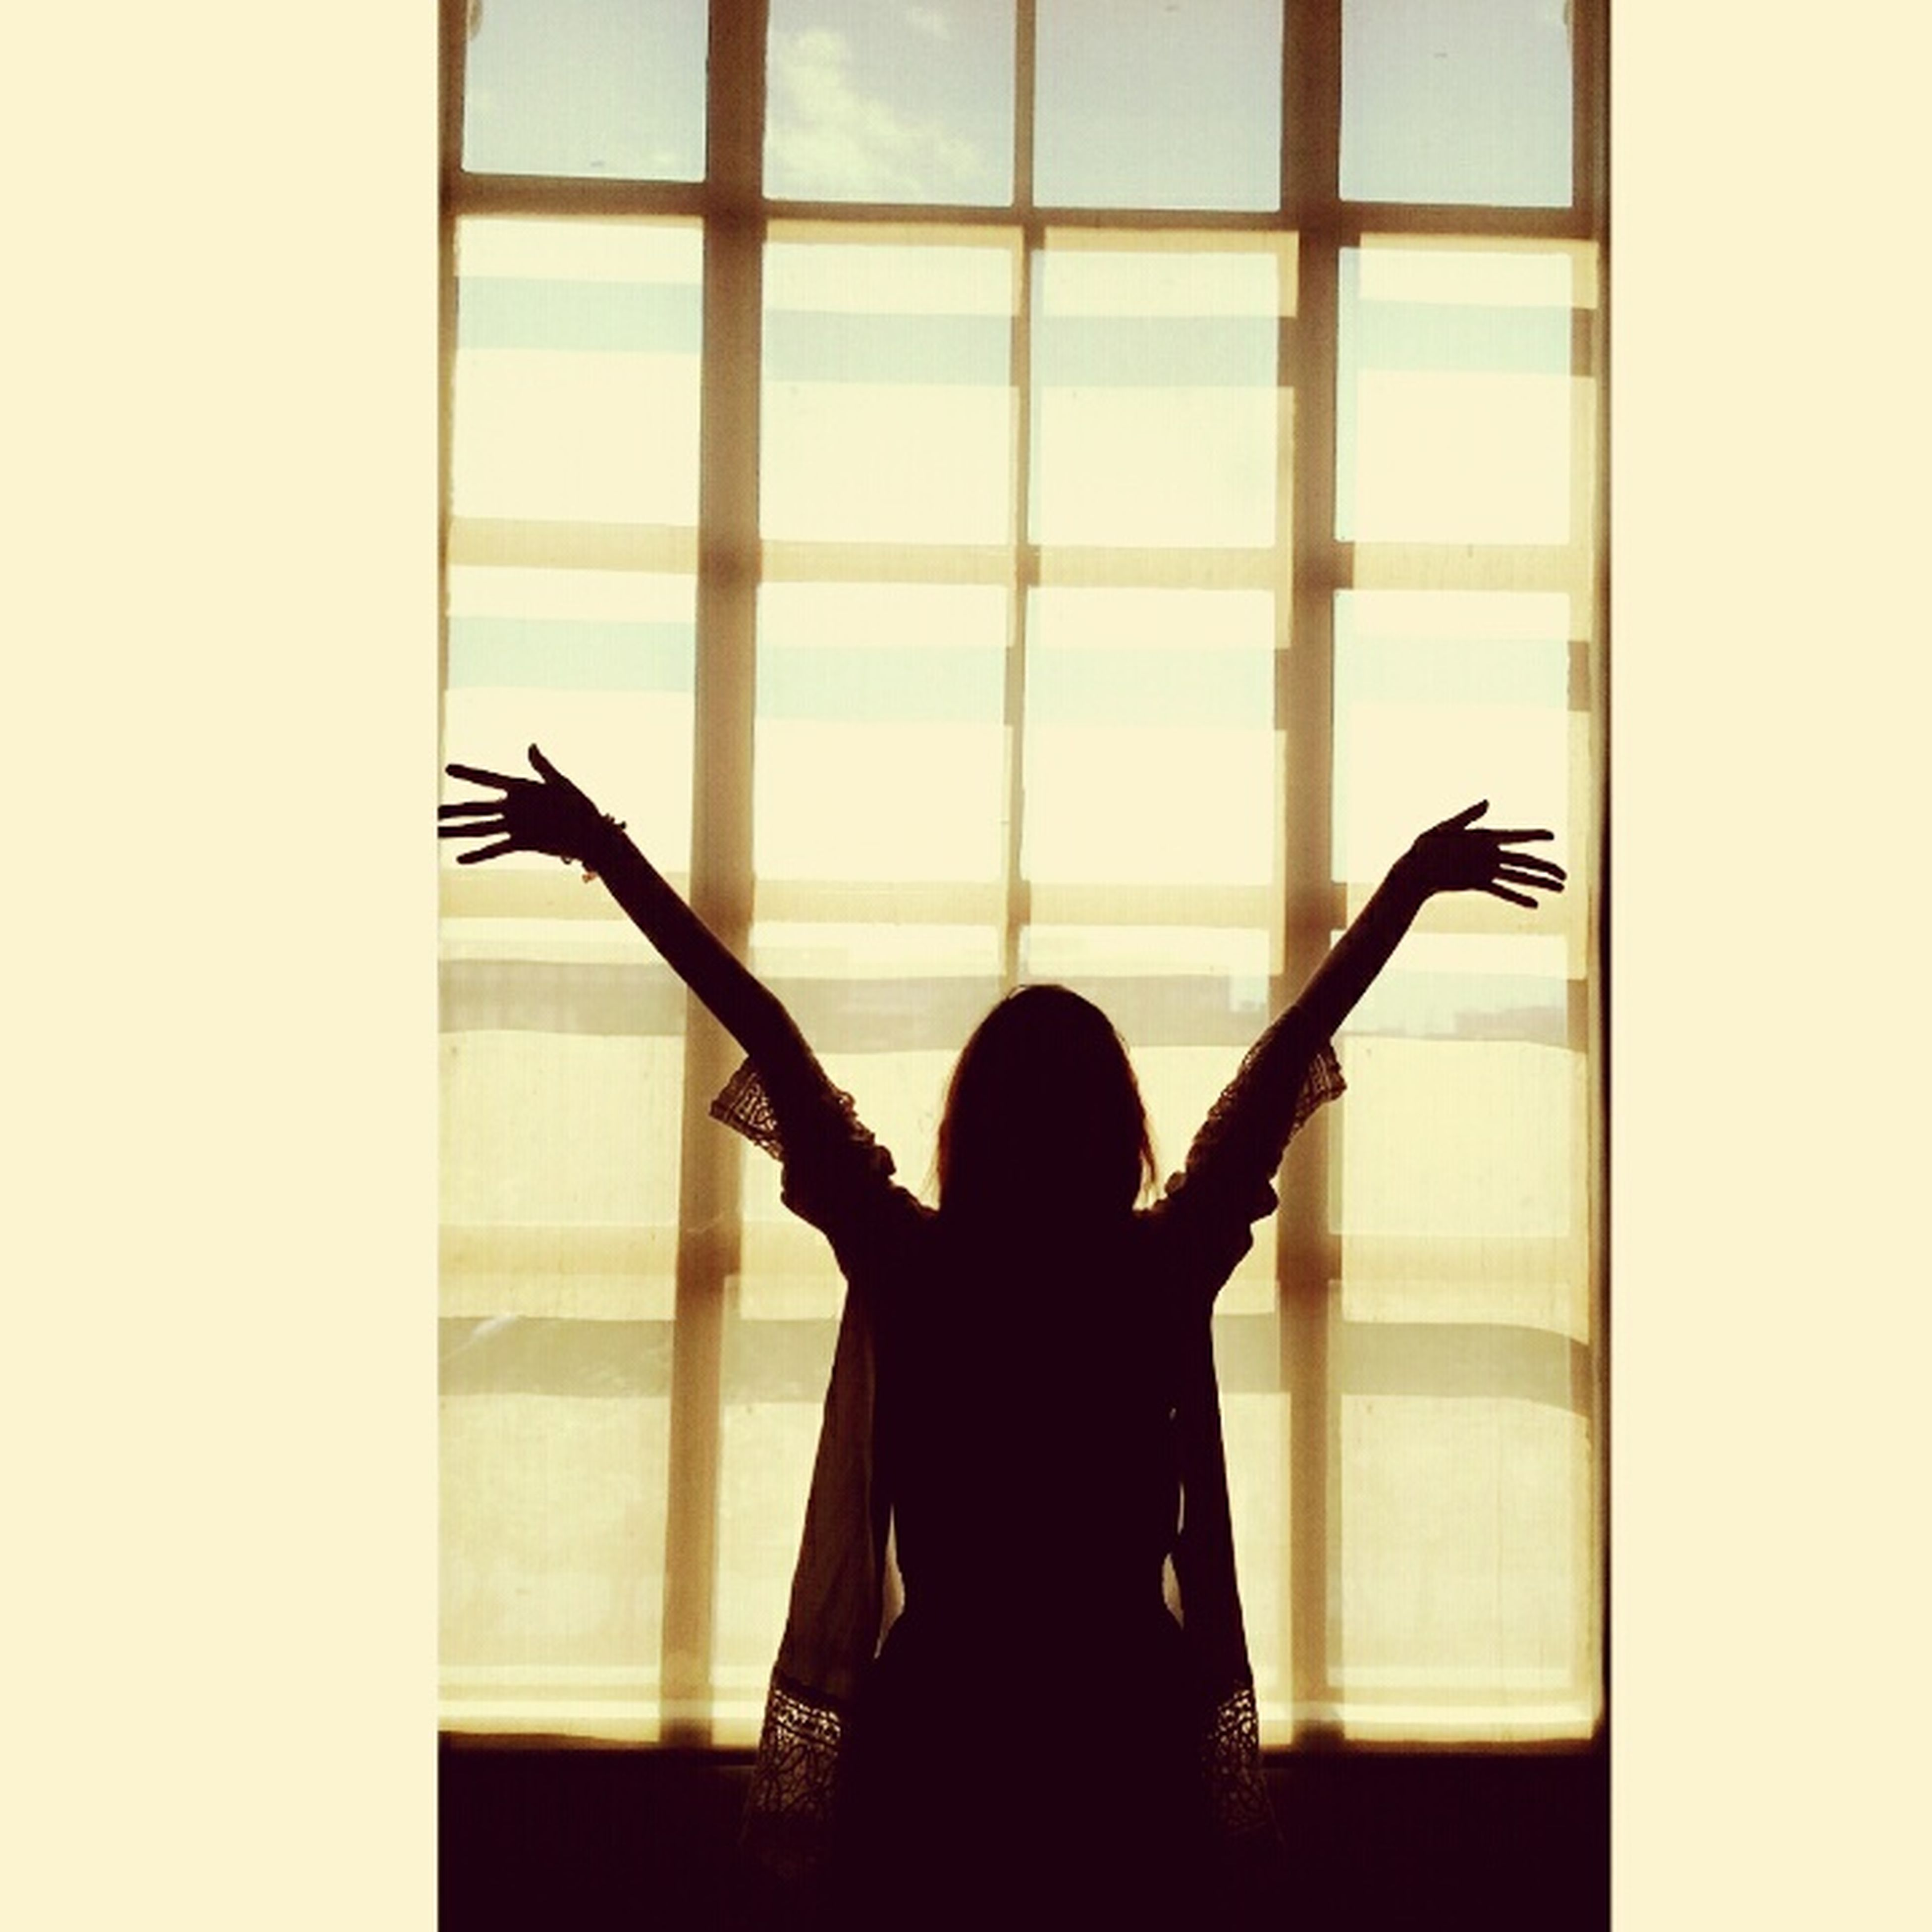 indoors, lifestyles, window, standing, leisure activity, glass - material, person, three quarter length, silhouette, holding, transparent, young adult, rear view, young women, side view, wireless technology, full length, photographing